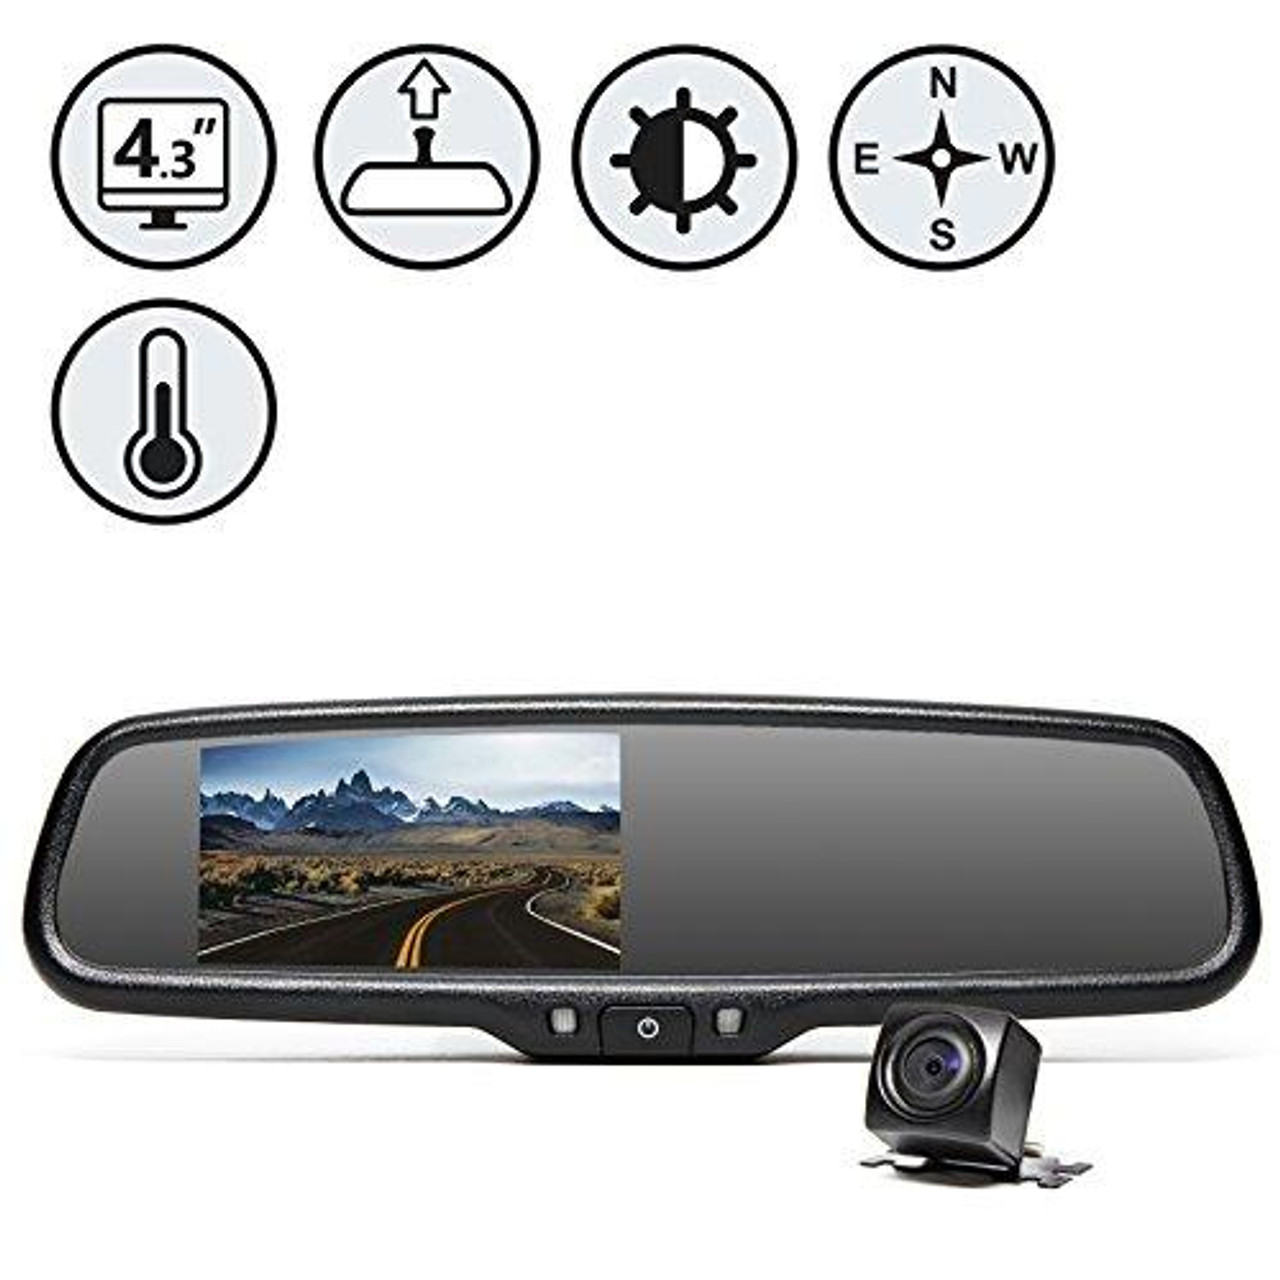 Rear View Safety RVS-776718-DCT OEM G-Series Black Rear View Camera System with Auto Dimming, Compass and Temperature